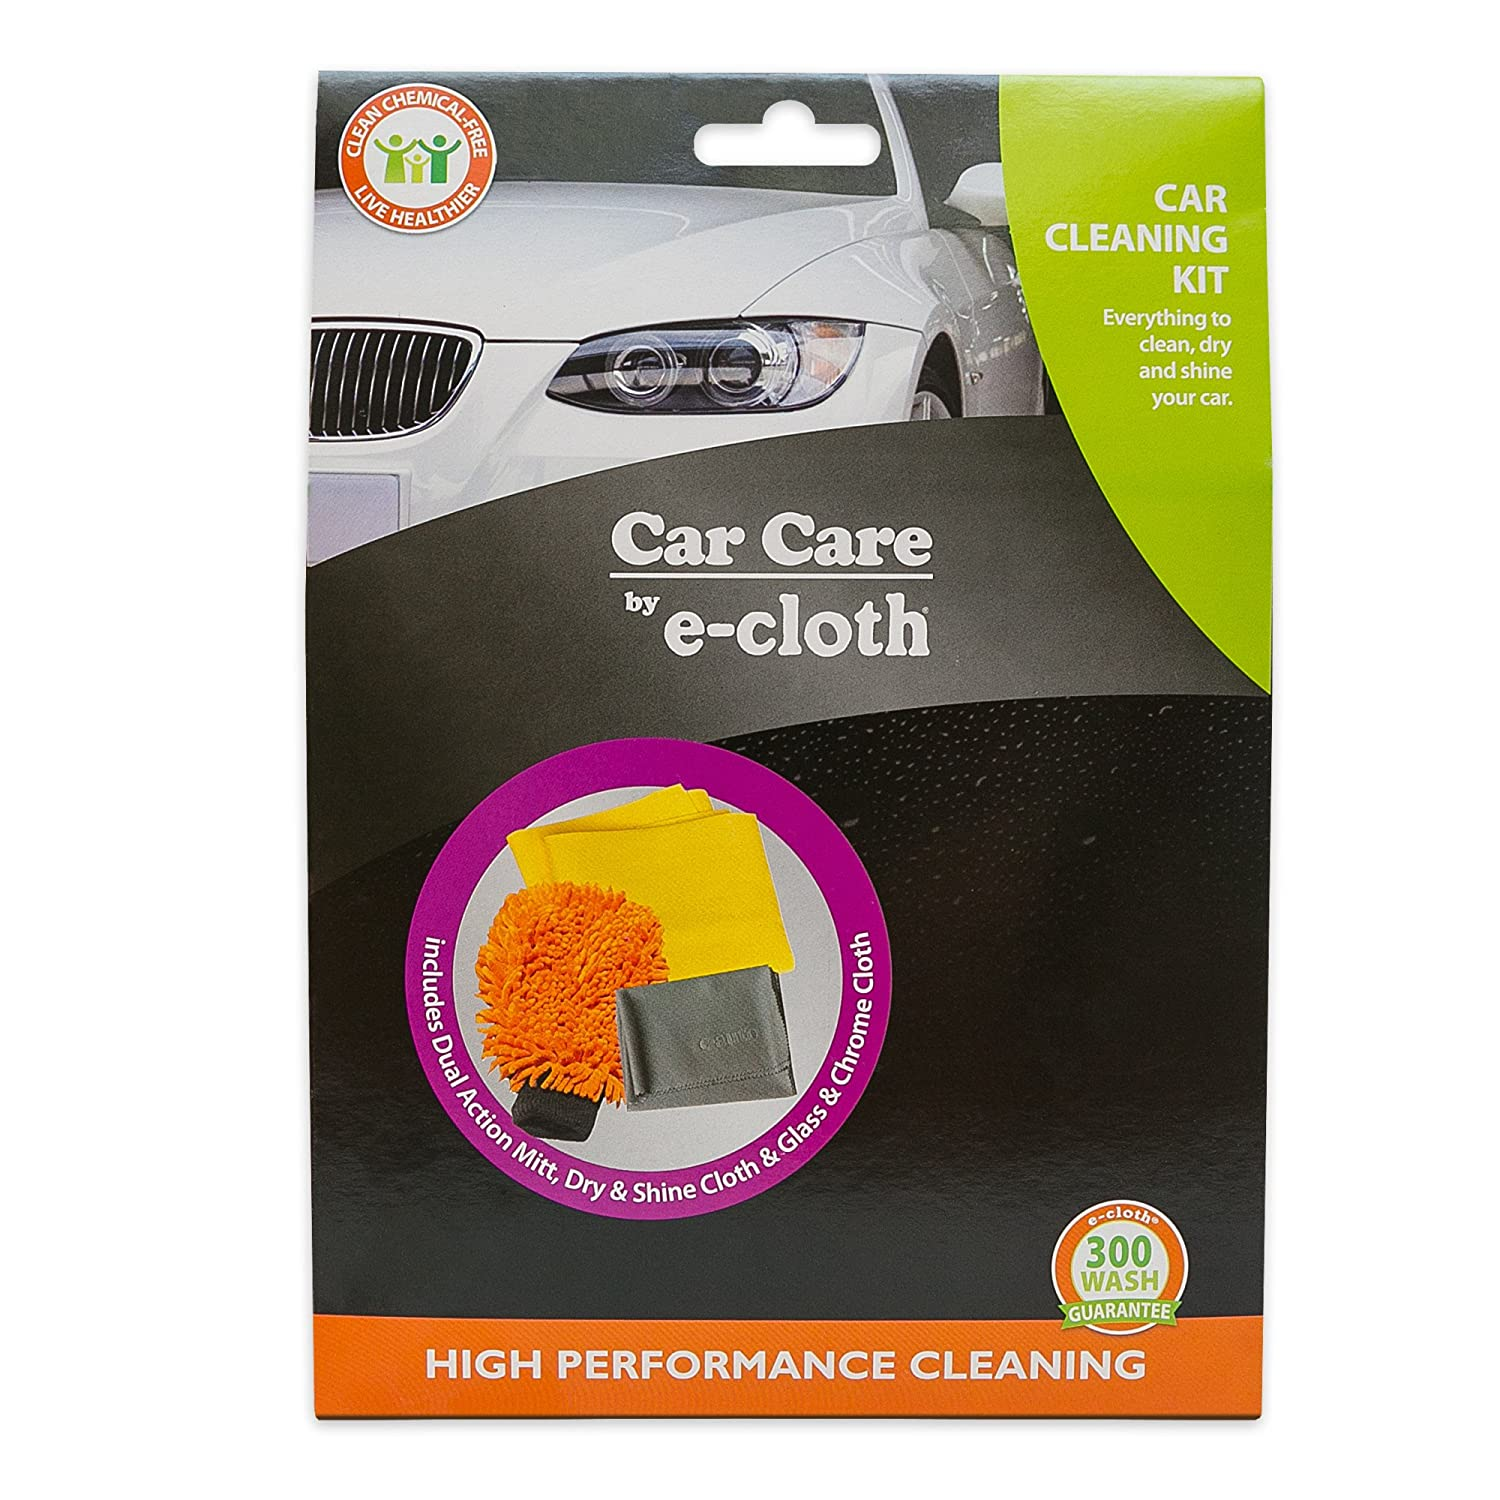 E-Cloth Car Cleaning Kit - Brilliant for Washing, Drying, Polishing - No-Scratches, Streaks or Residue - Just Add Water THRTX0031